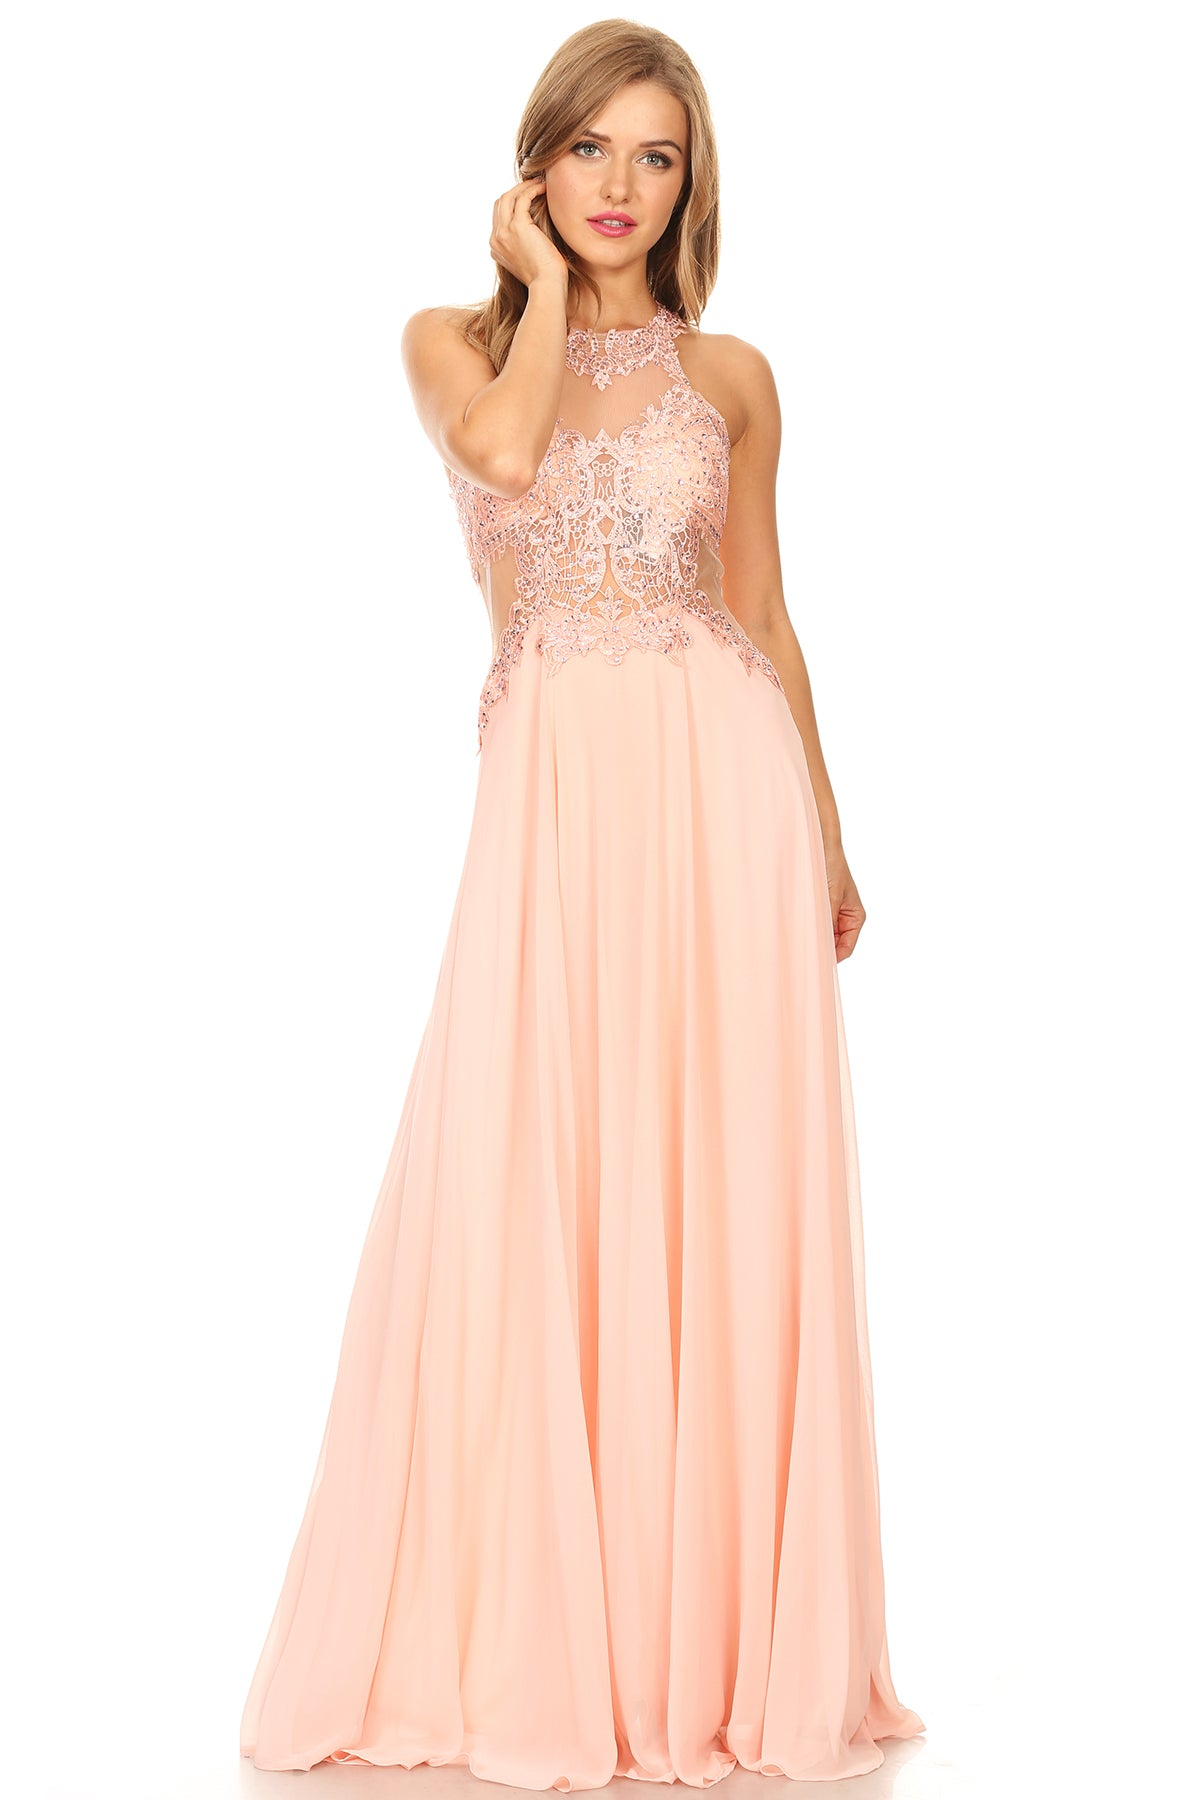 Prom Dress promev#3255 - Extreme Style